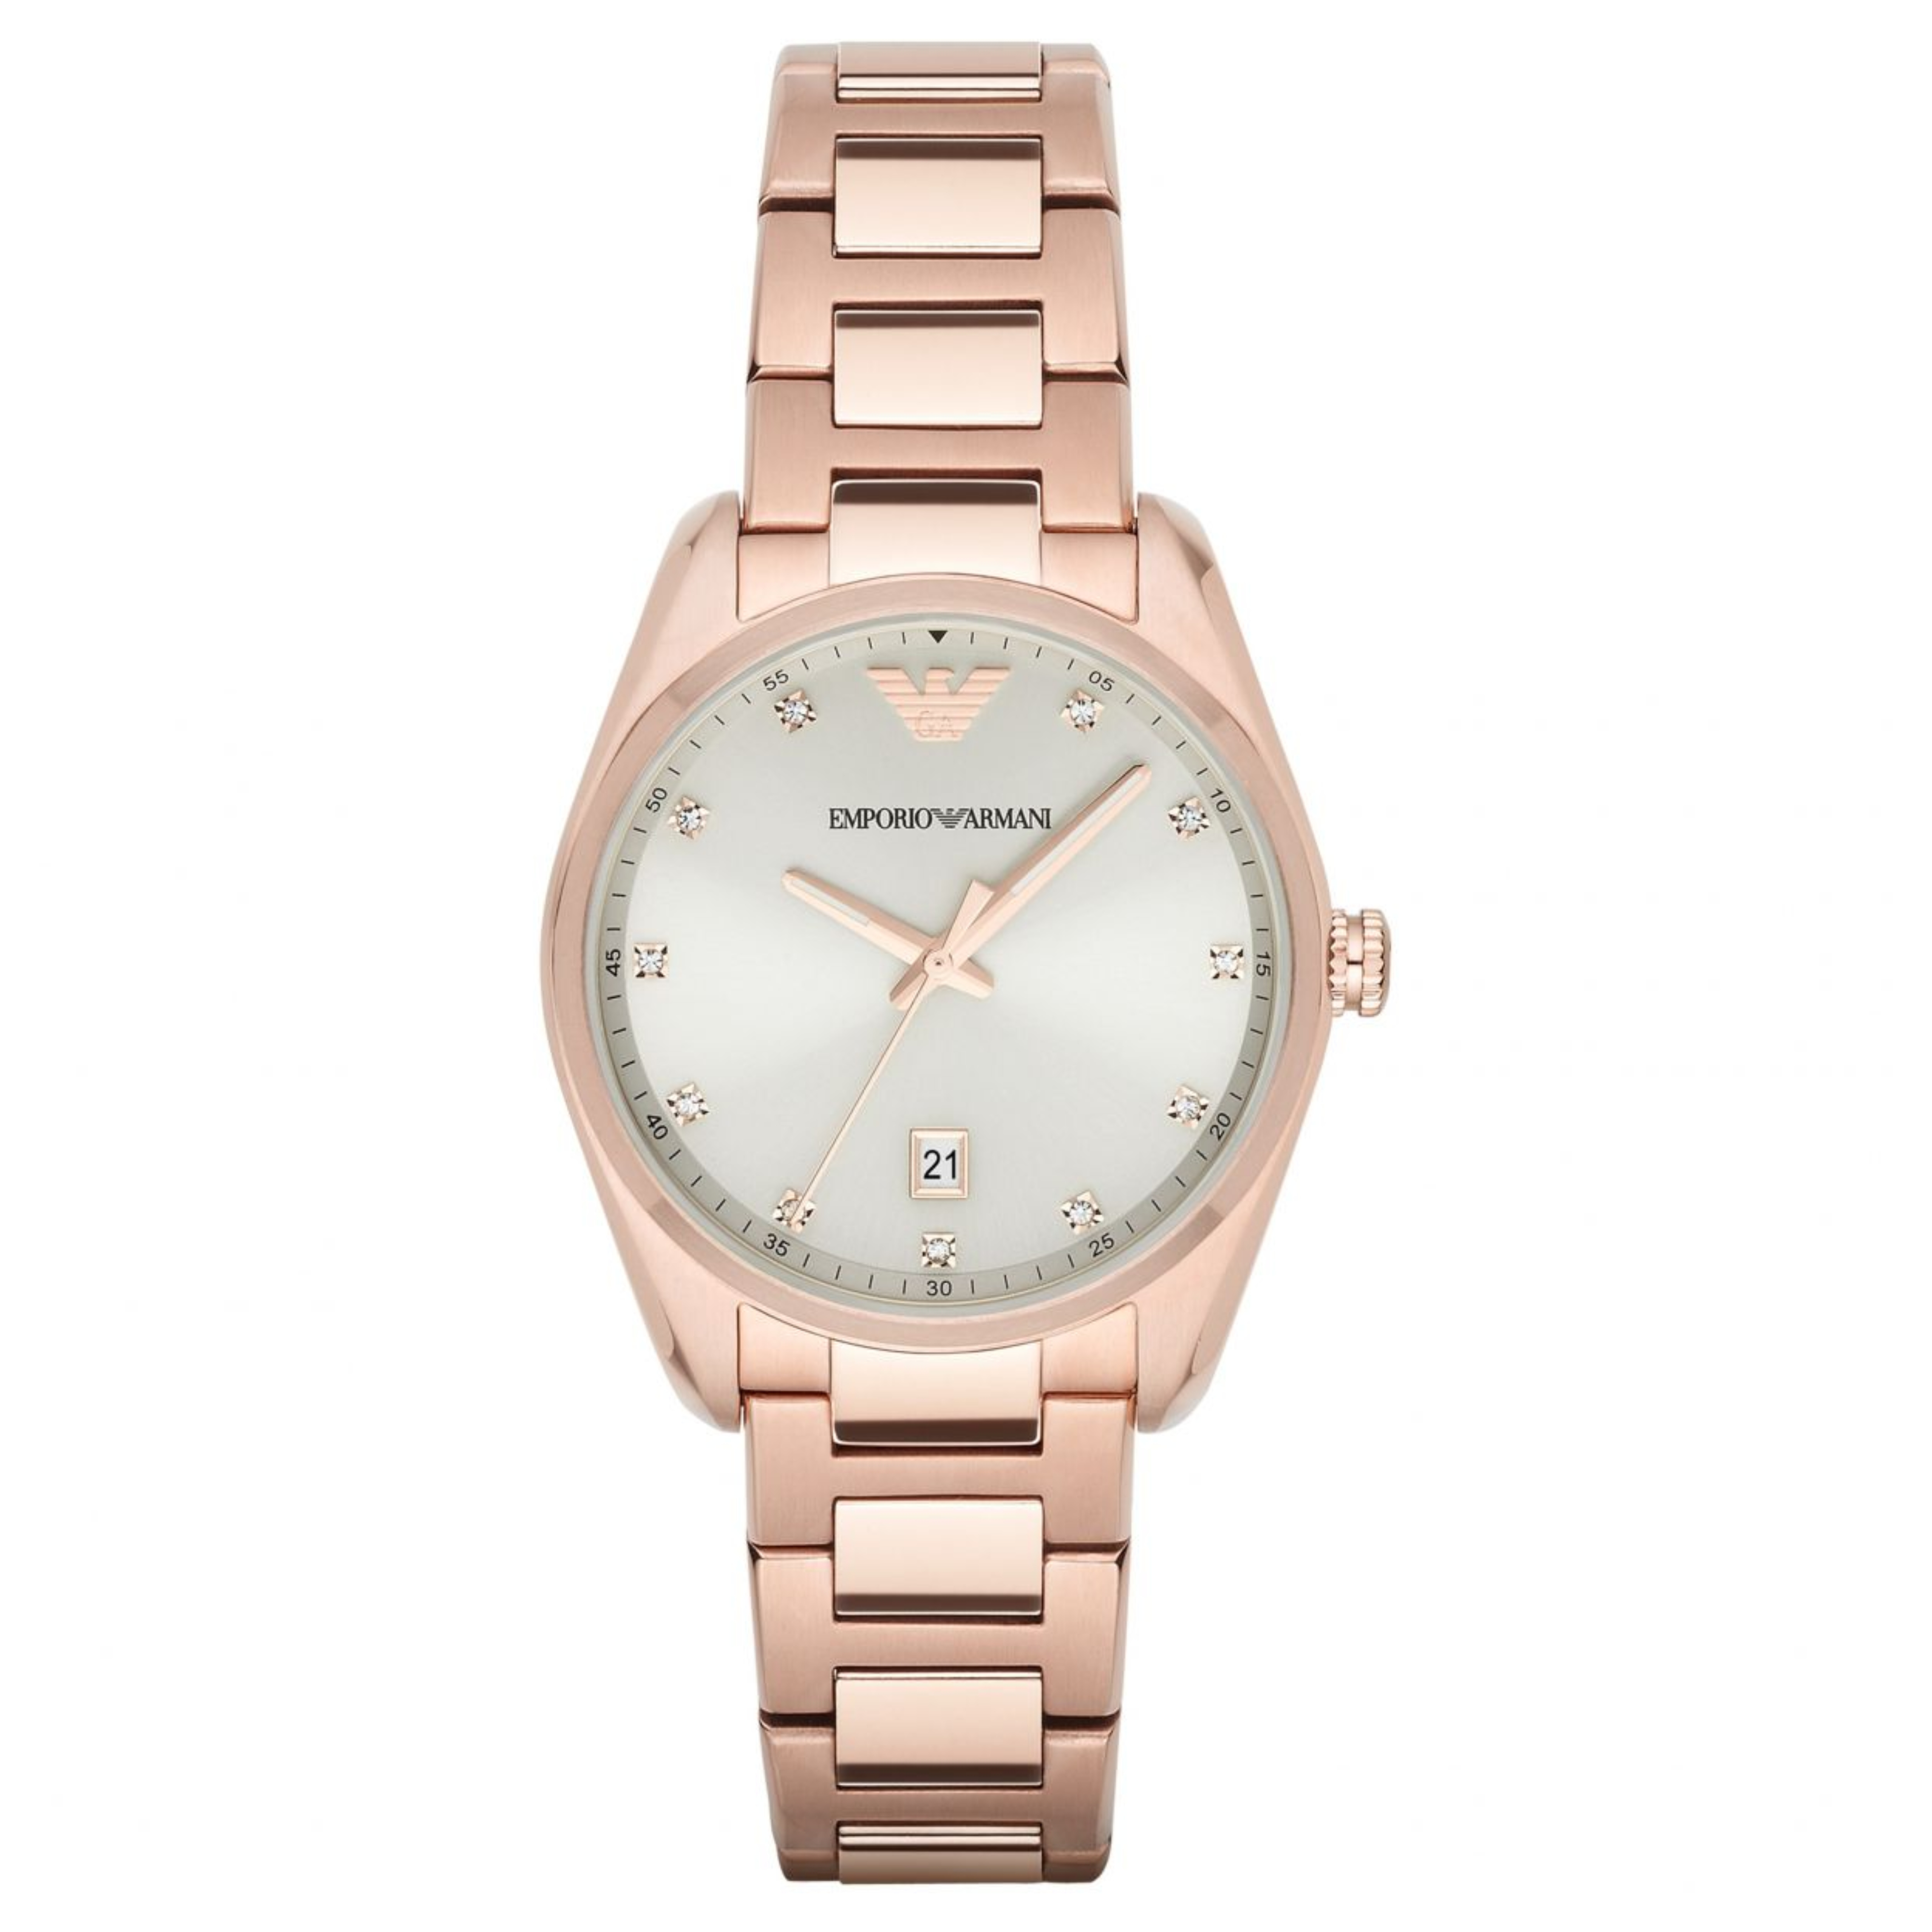 Details about Emporio Armani Classic Women Watch│Silver Sunray Dial│Rose  Gold Bracelet│AR6065 ade826ee8c